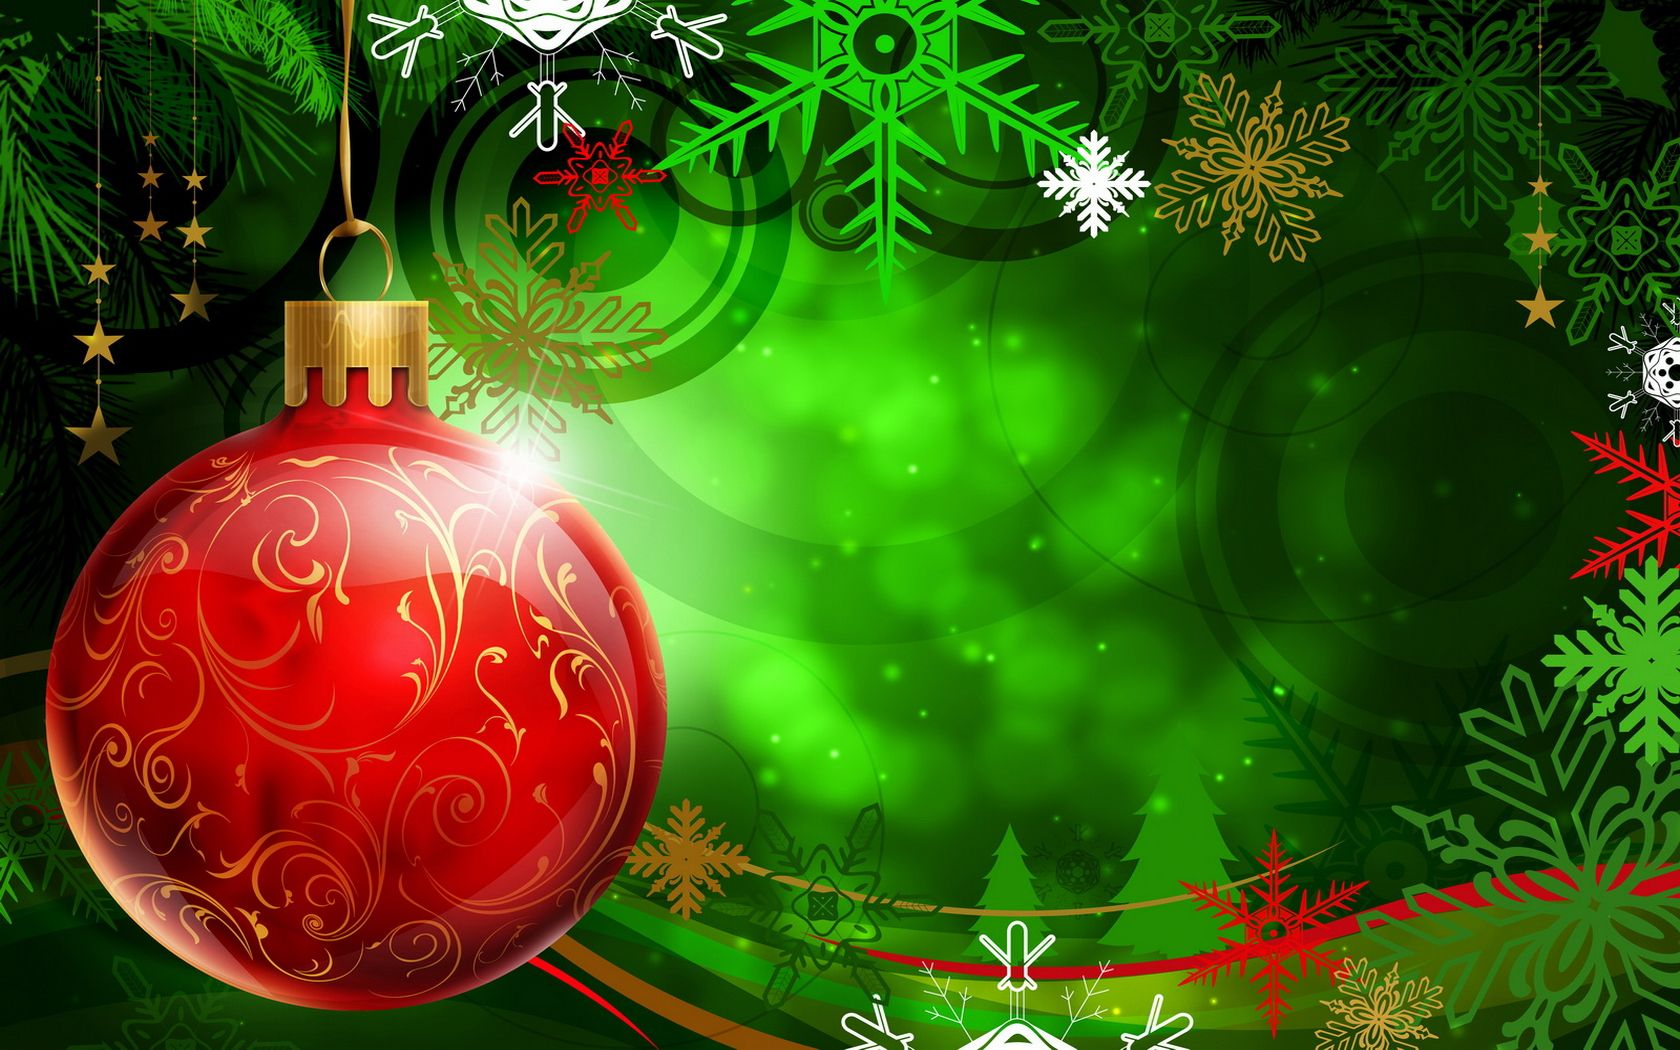 Hd wallpaper xmas - Free Christian Christmas Wallpaper For Laptop Computer 3d Christmas Pictures And Hd Wallpapers Celesto